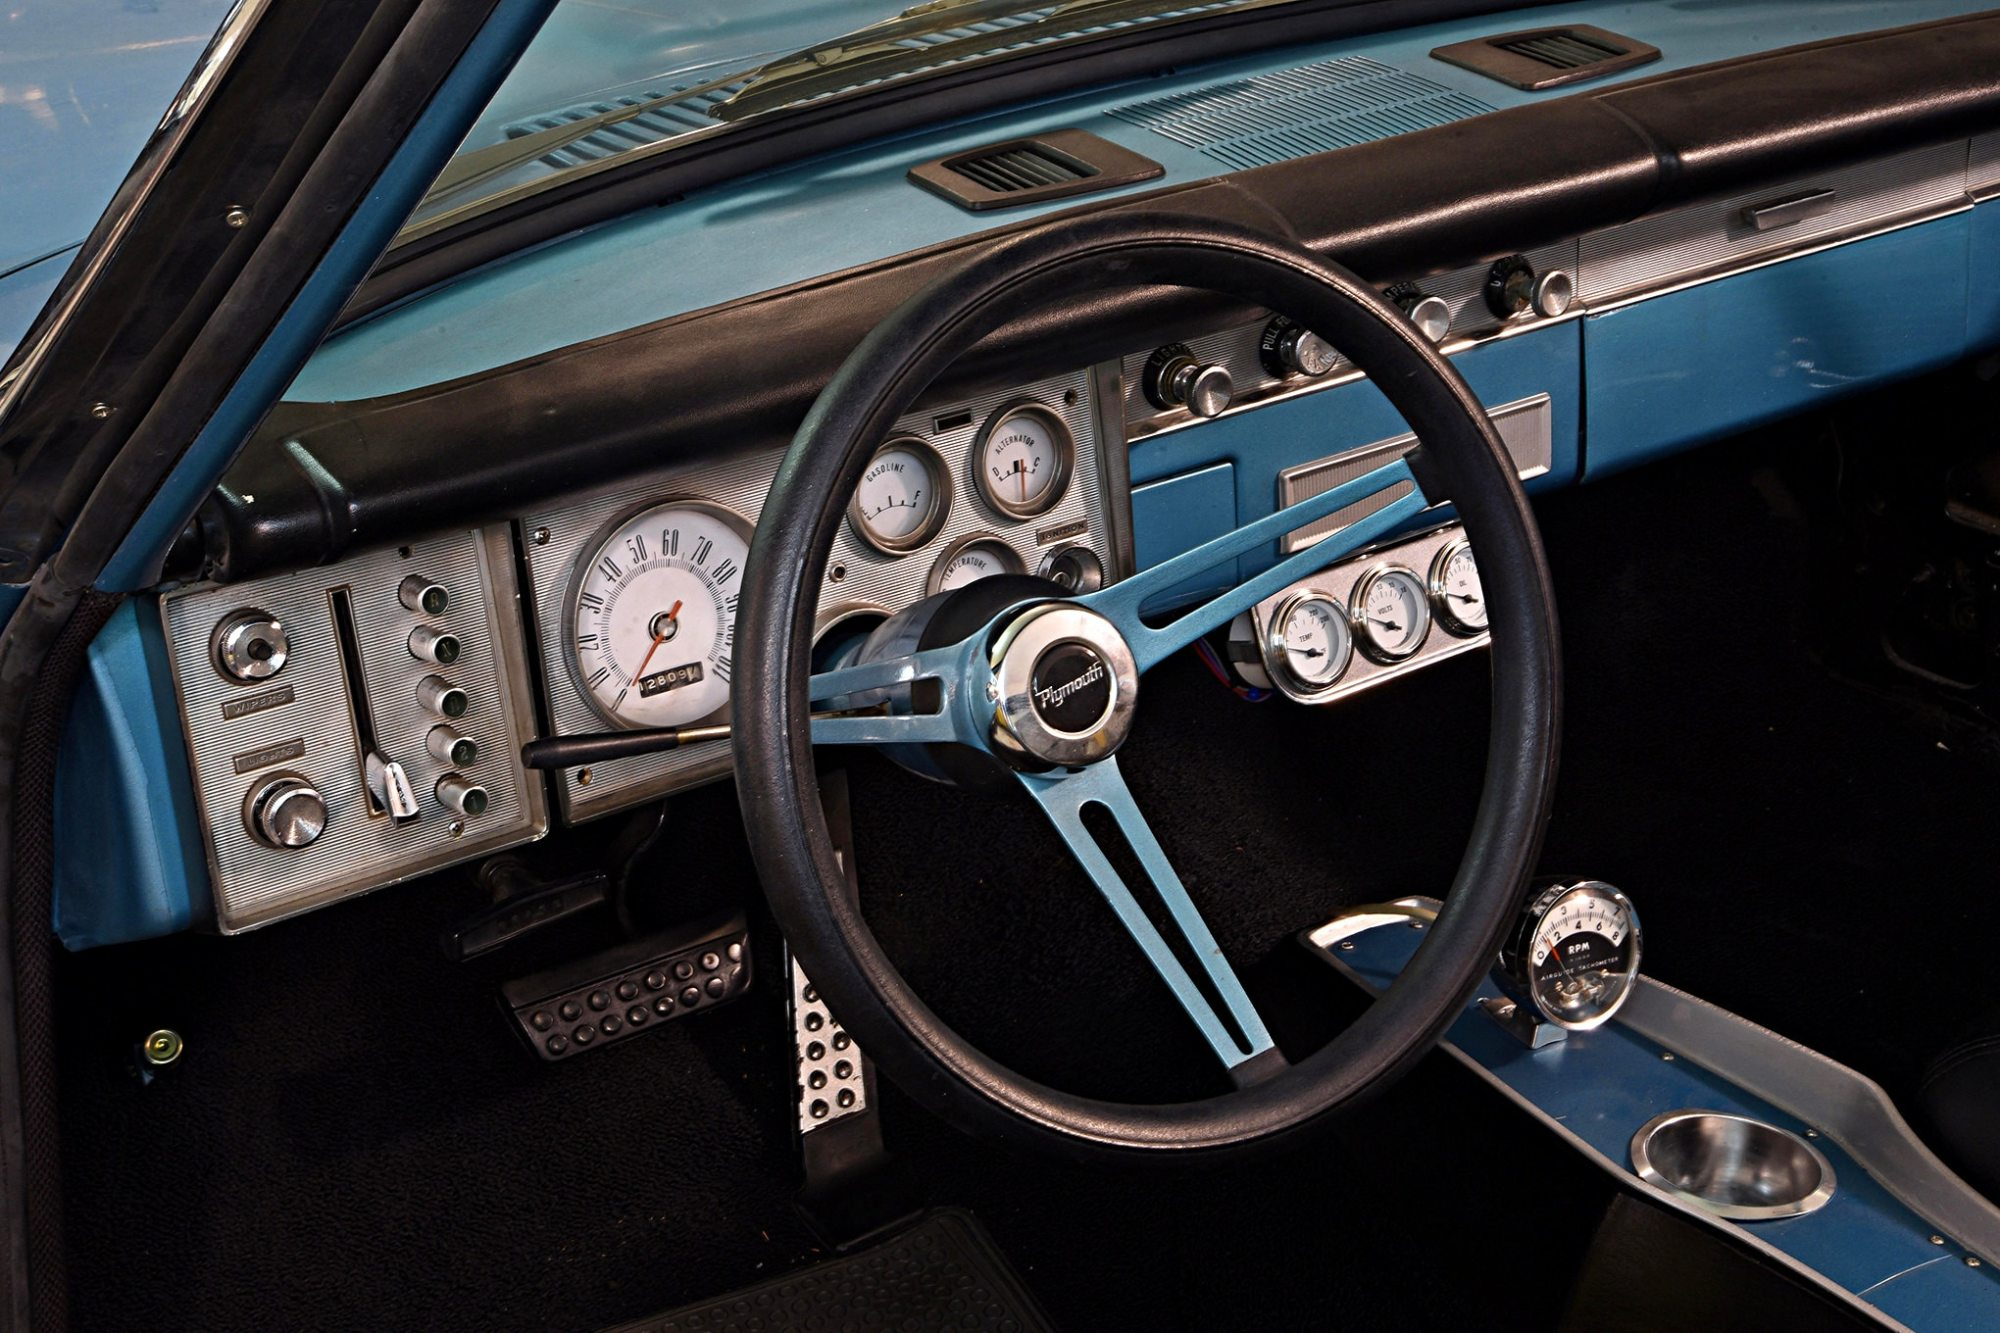 hight resolution of how to rewire a 1965 plymouth barracuda the painless way hot rod 780782 40 1965 barracuda wiring diagram